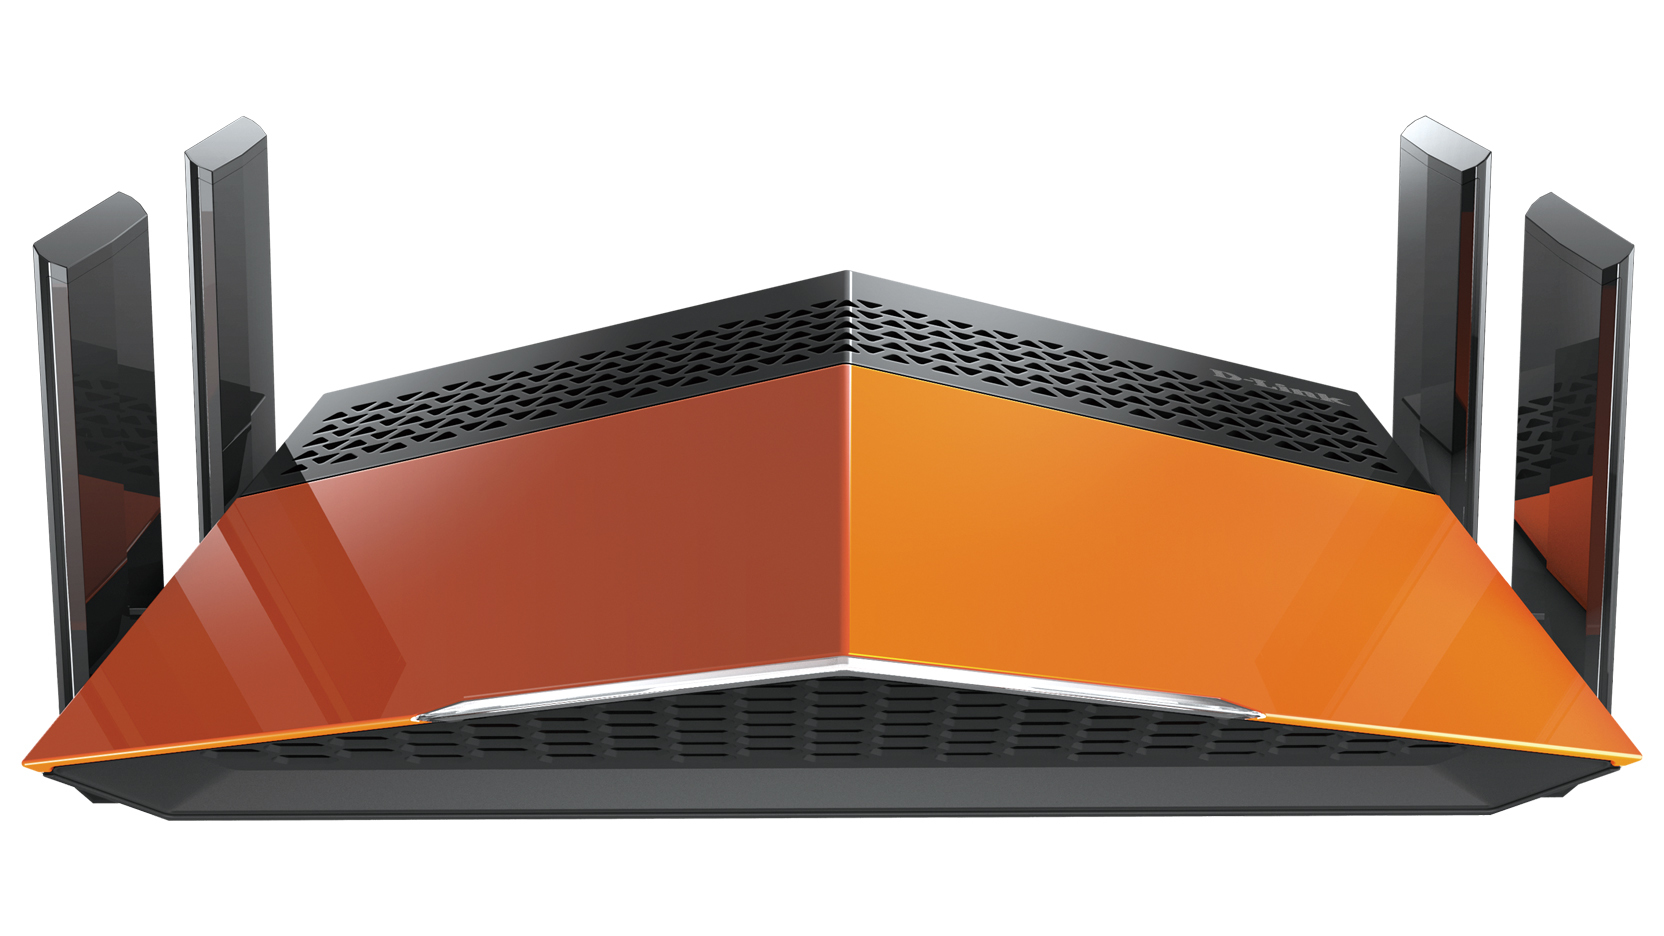 D-Link EXO AC1750 Wi Fi Gigabit Router 1750Mbps Extreme Wi-Fi Coverage DIR-869